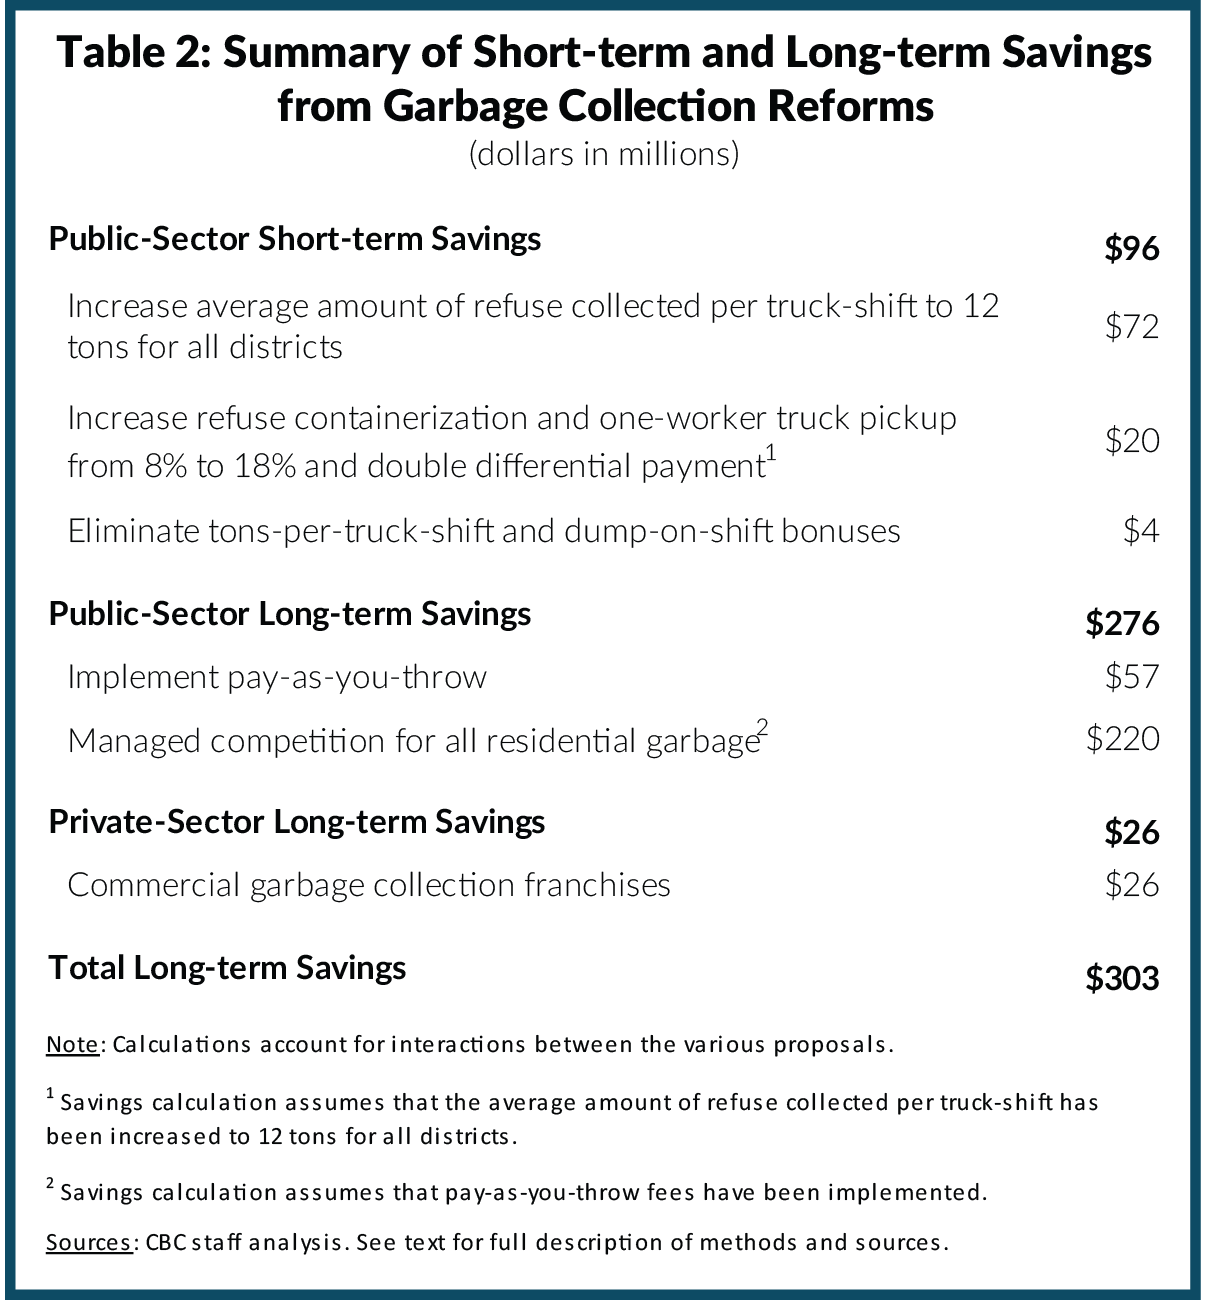 Table 2: Summary of Short-term and Long-term Savings from Garbage Collection Reforms